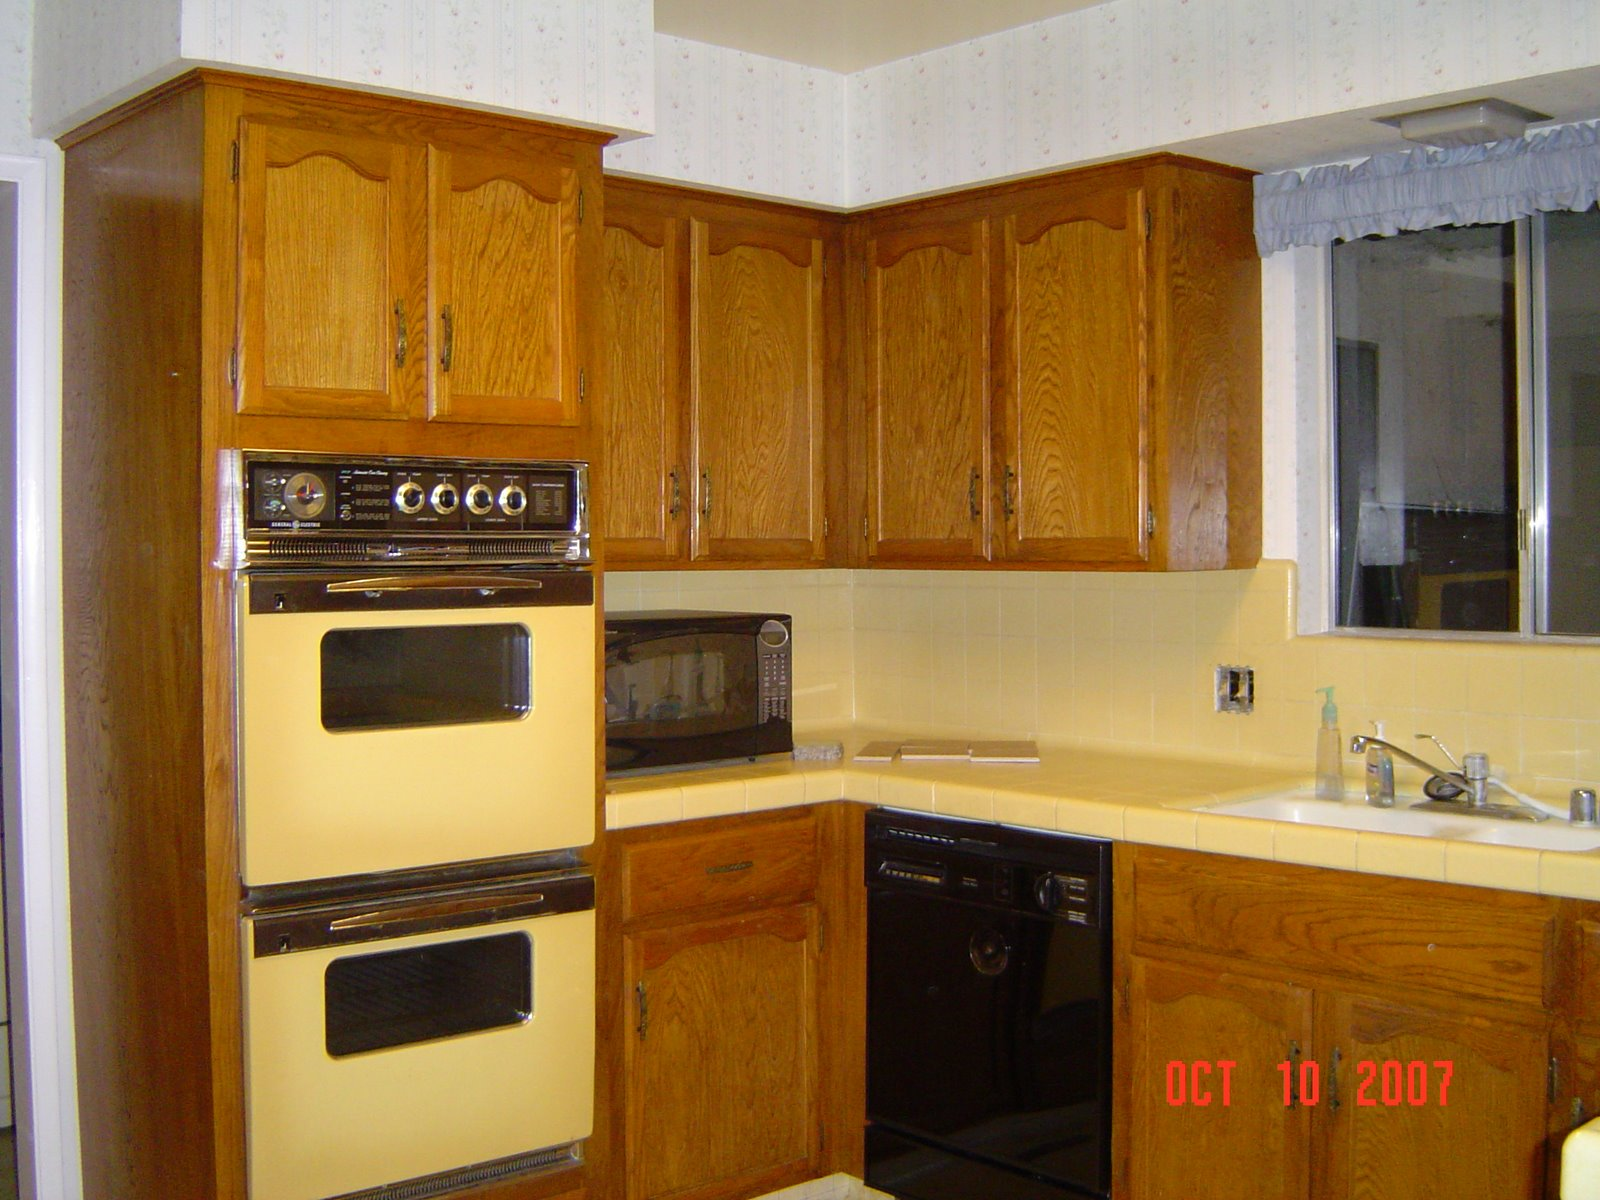 70s style kitchen home design and decor reviews for Kitchen design 70s